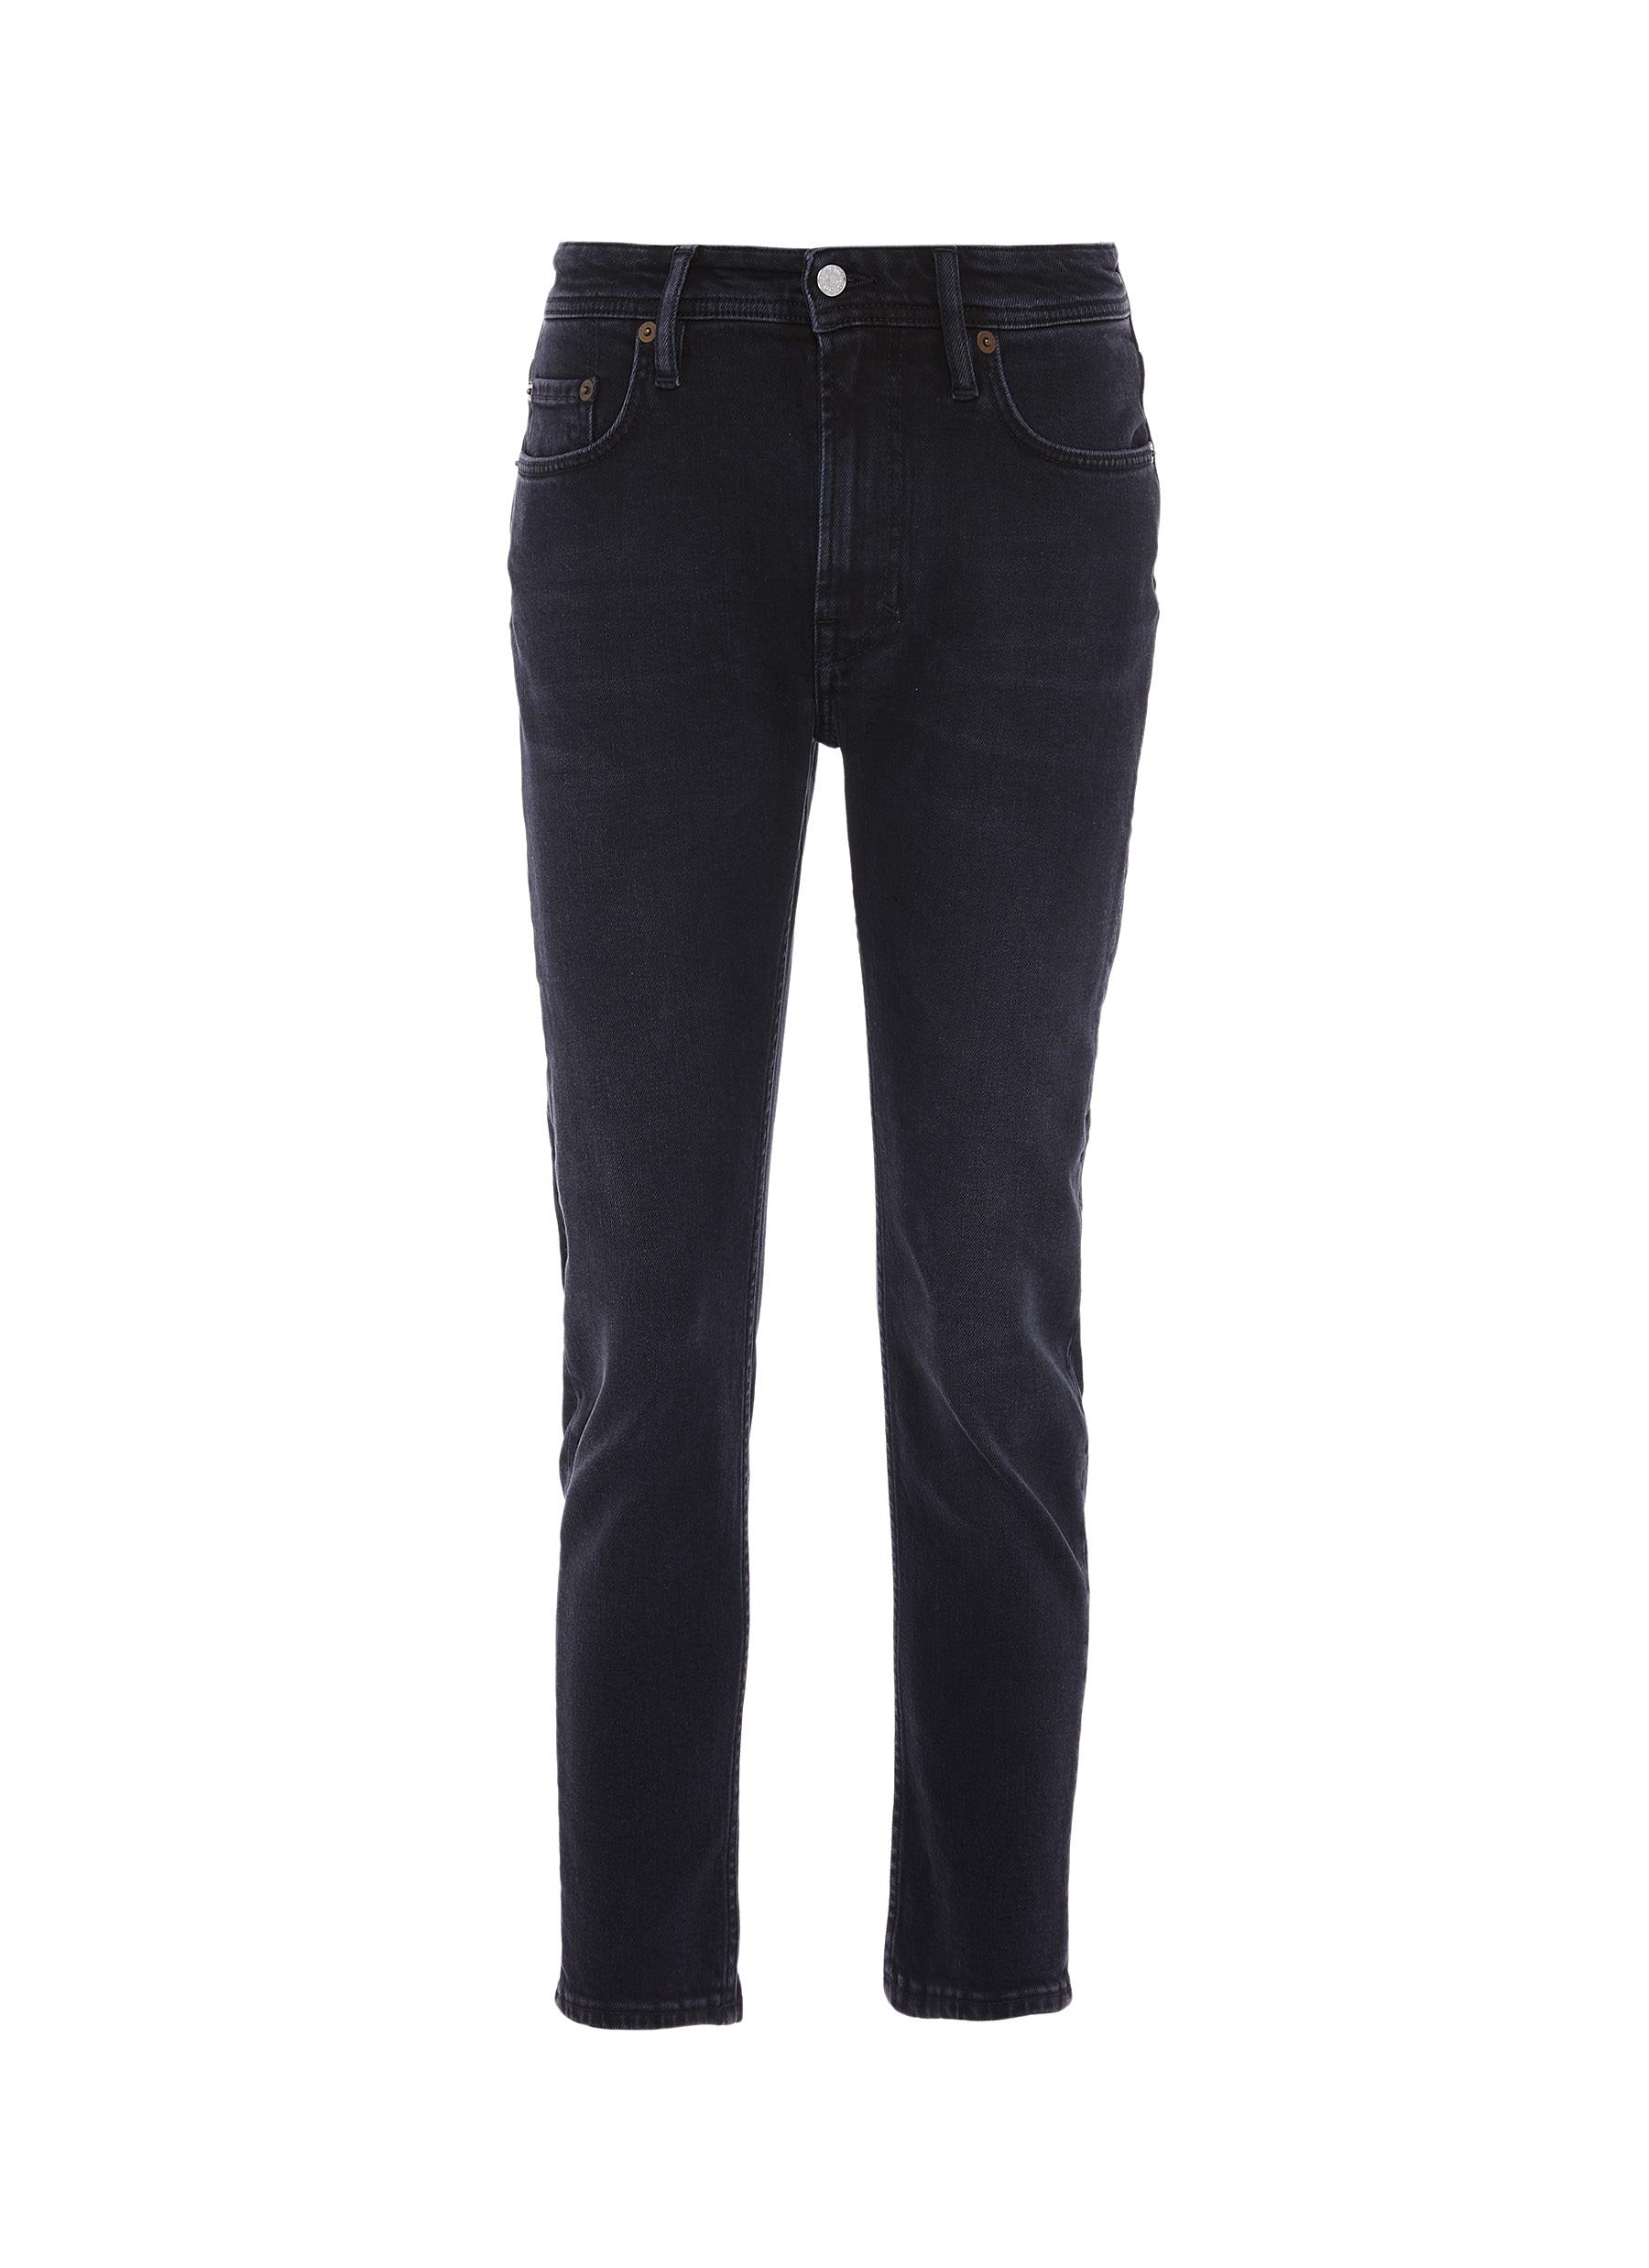 High waist jeans by Acne Studios